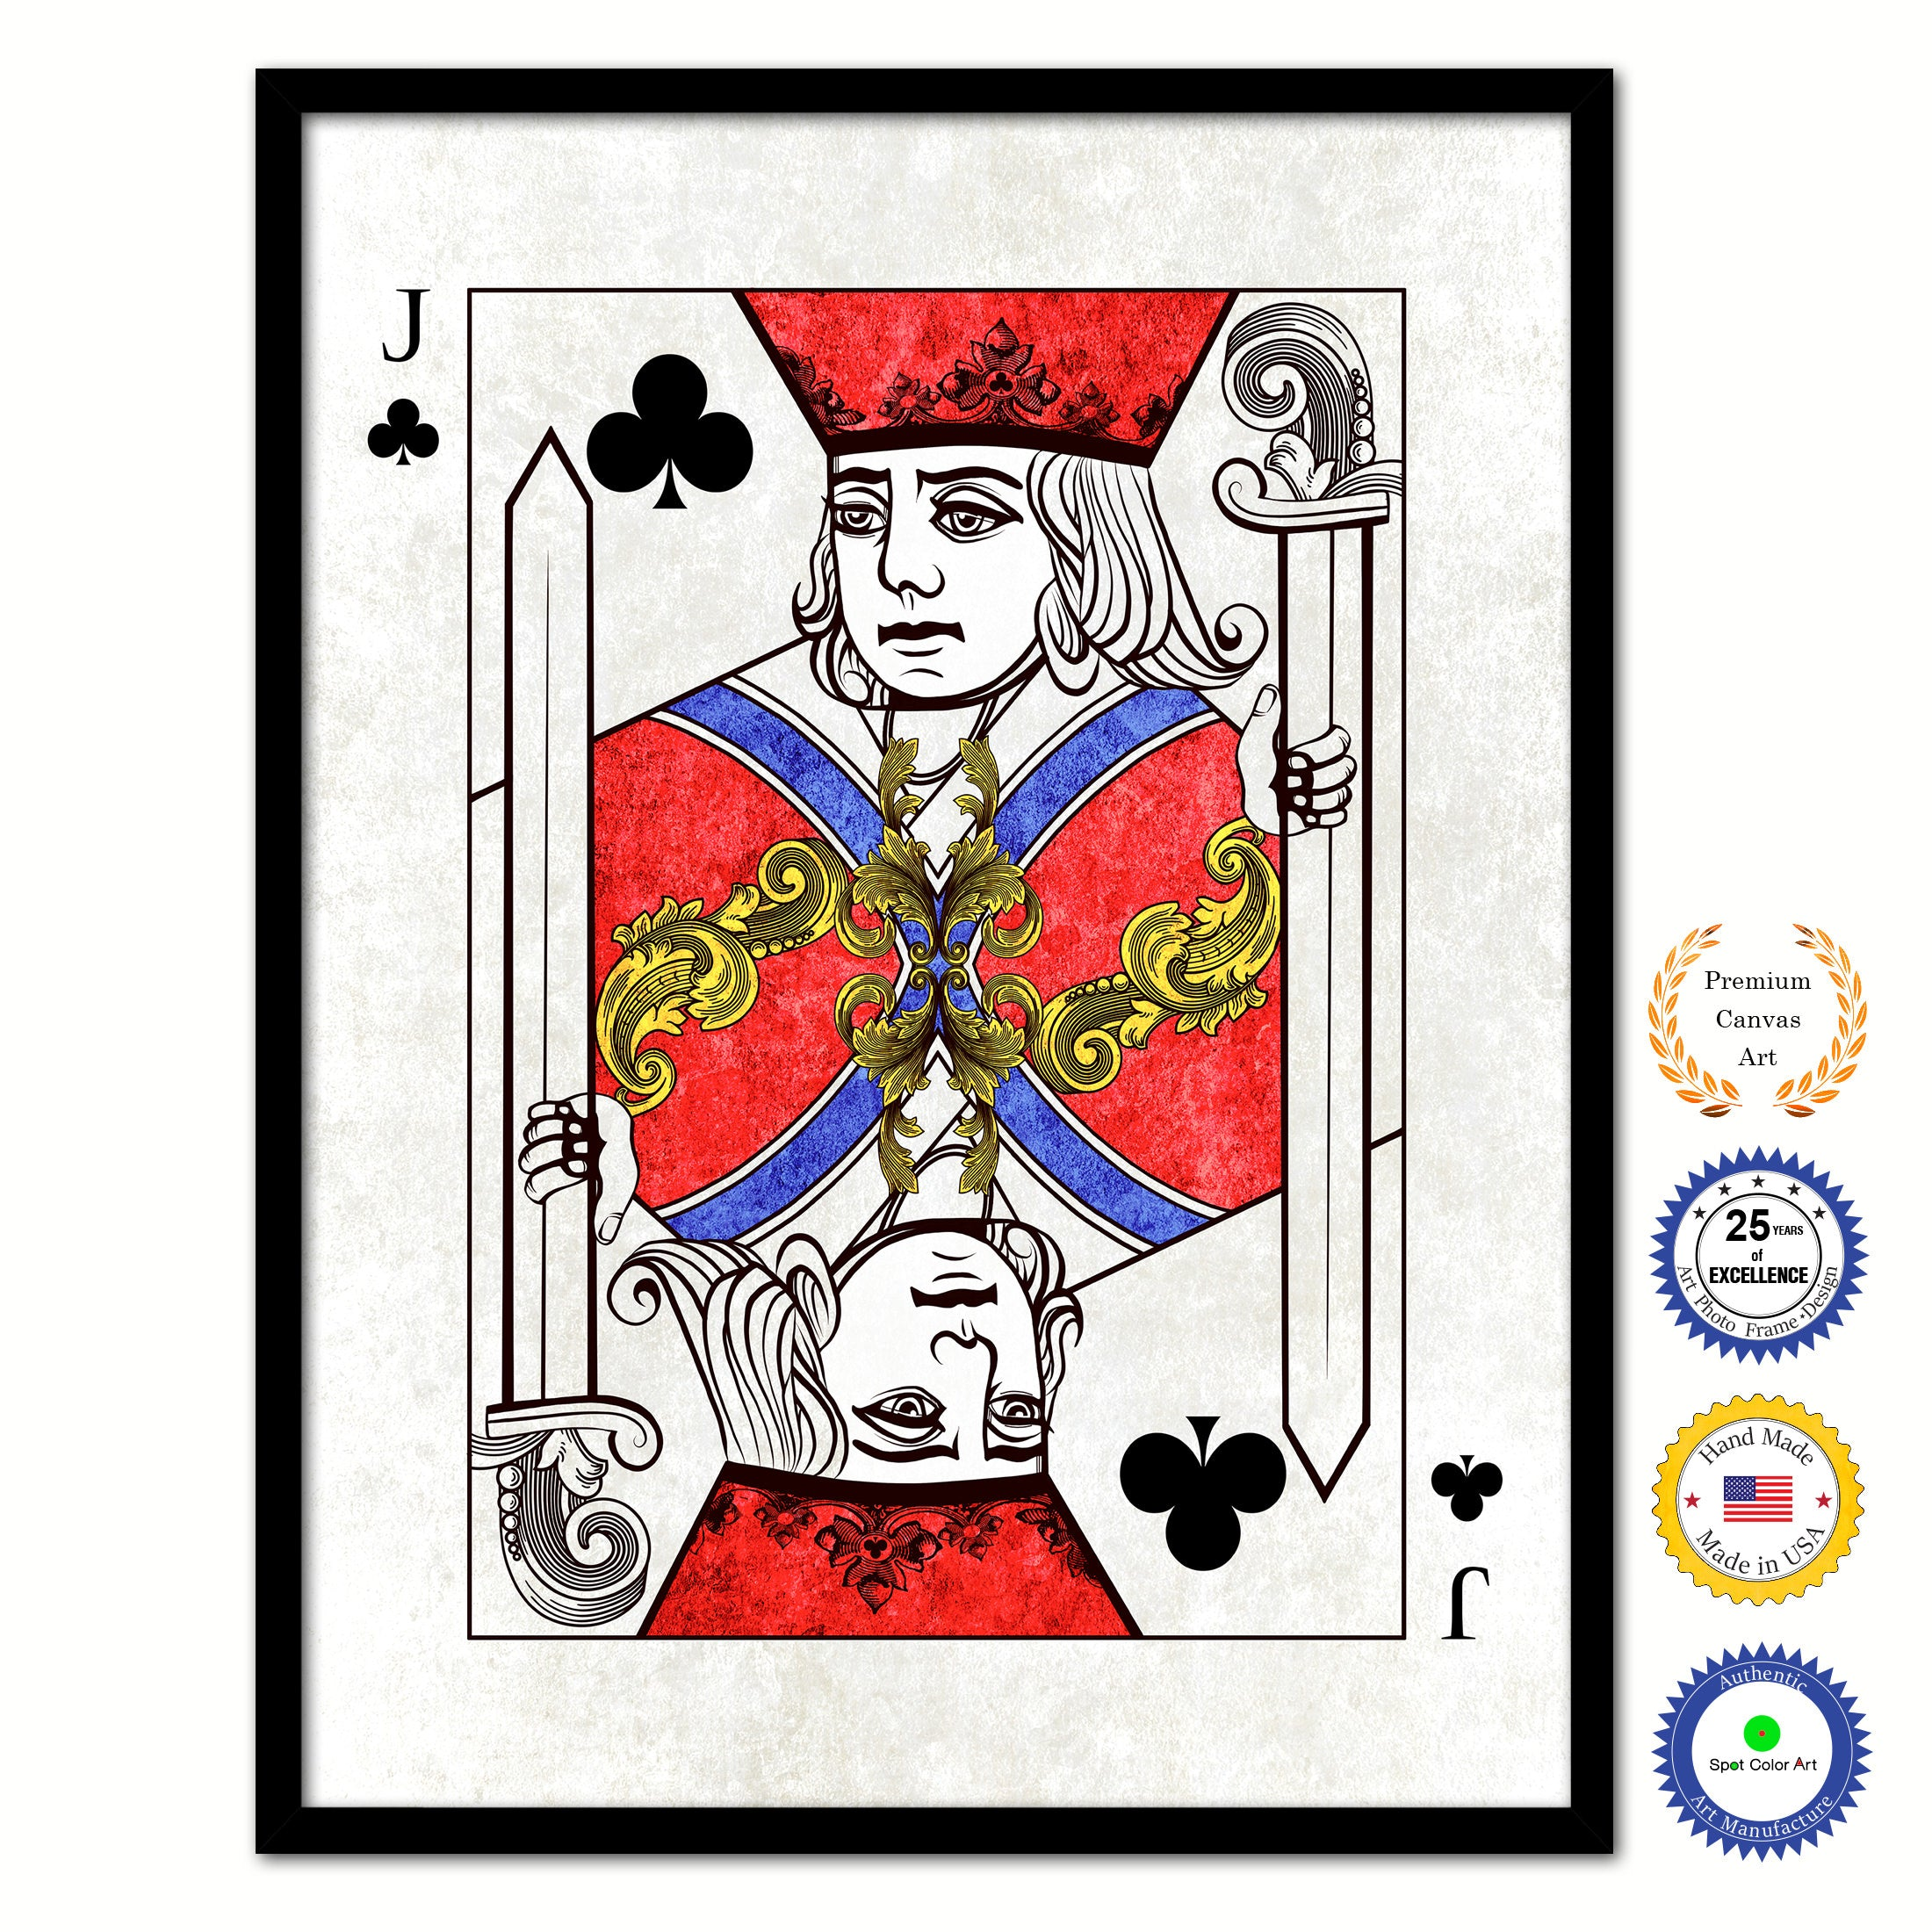 Jack Clover Poker Decks of Vintage Cards Print on Canvas Black Custom Framed